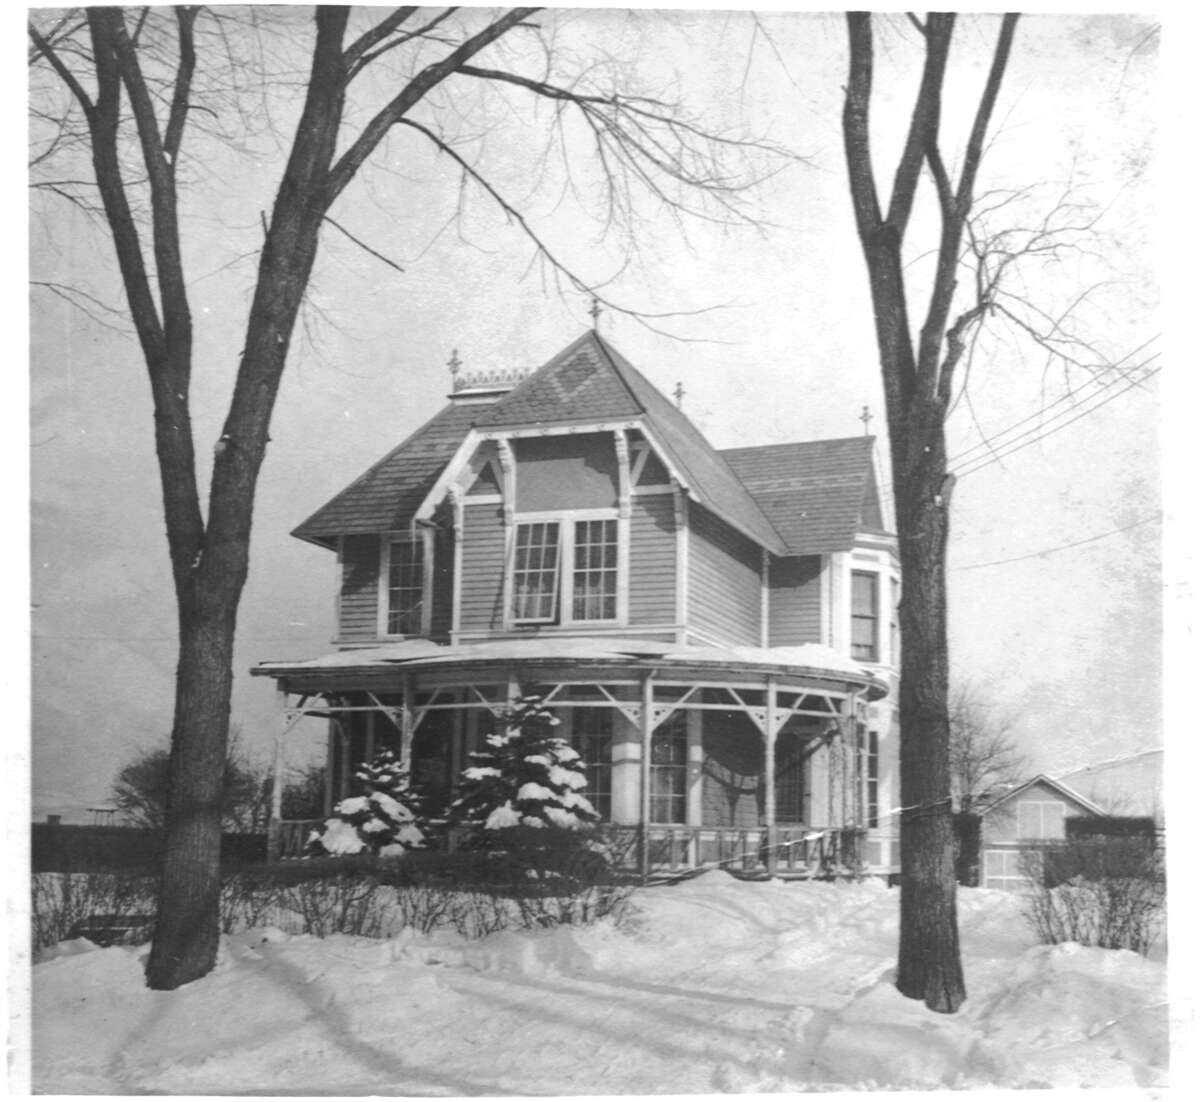 16 Imperial Ave., Cohoes in the 1920s. The current owners have restored it to its original look. (Photo provided by Paul Dunleavy)